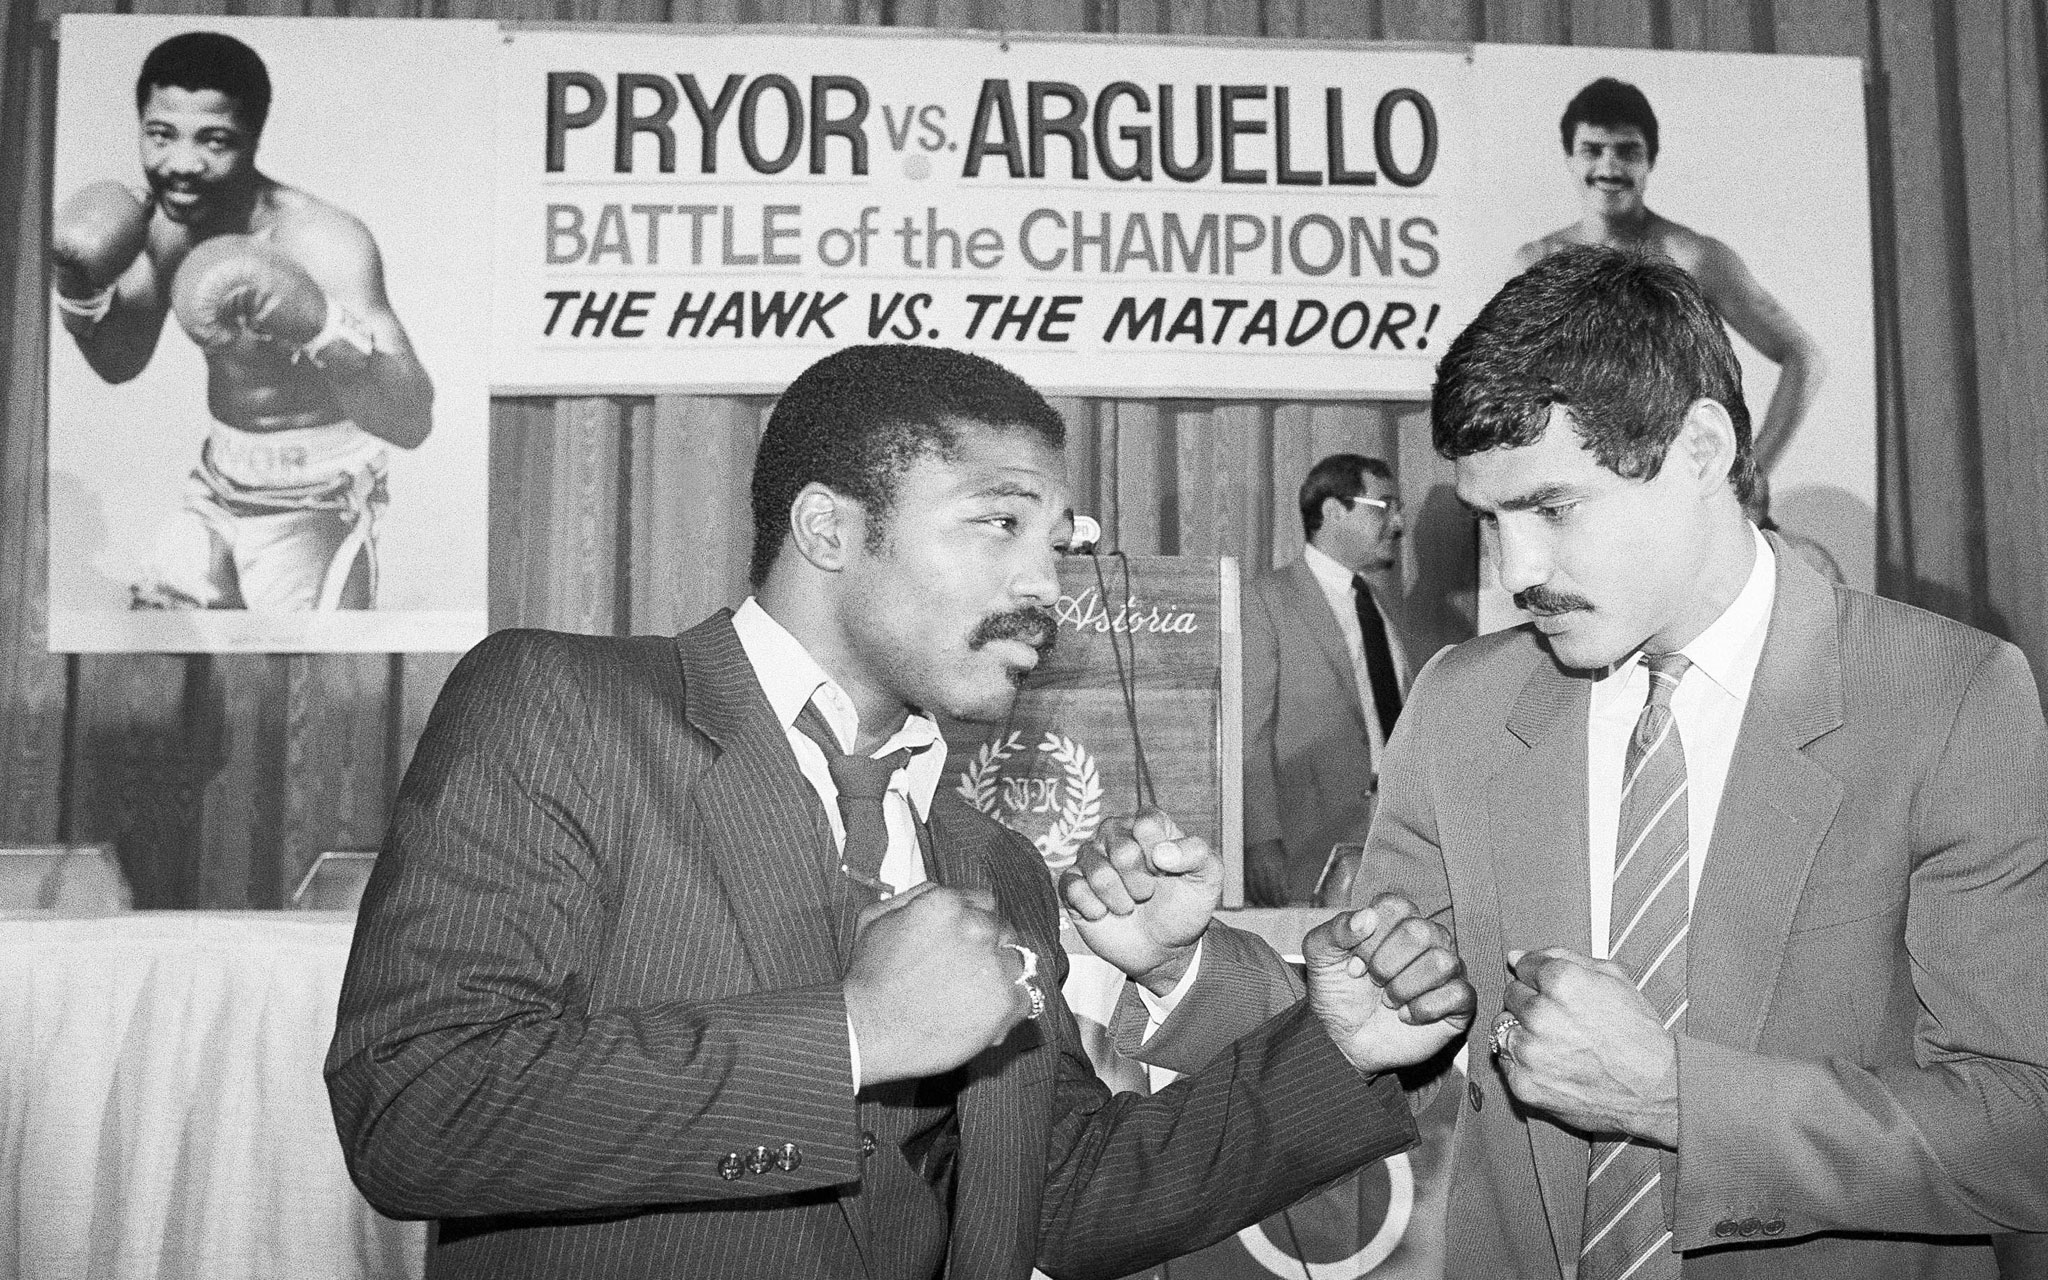 Aaron Pryor (left) and Alexis Arguello. Photo courtesy of ESPN.com